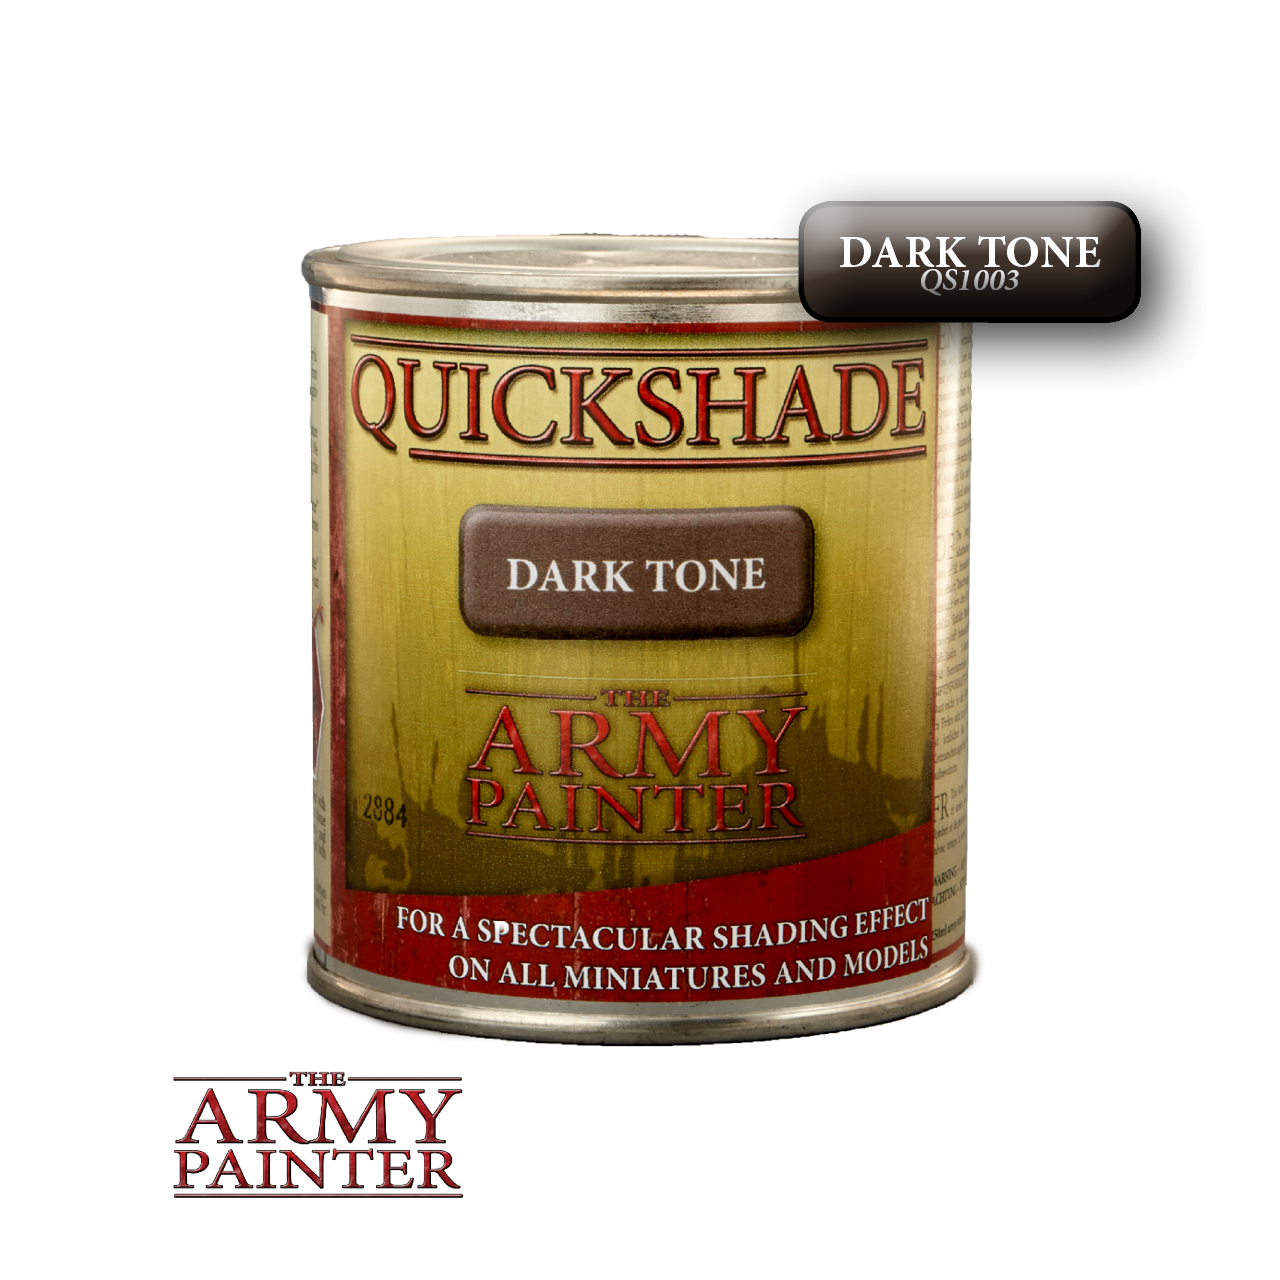 Army Painter Quickshade Dark Tone 250Ml.